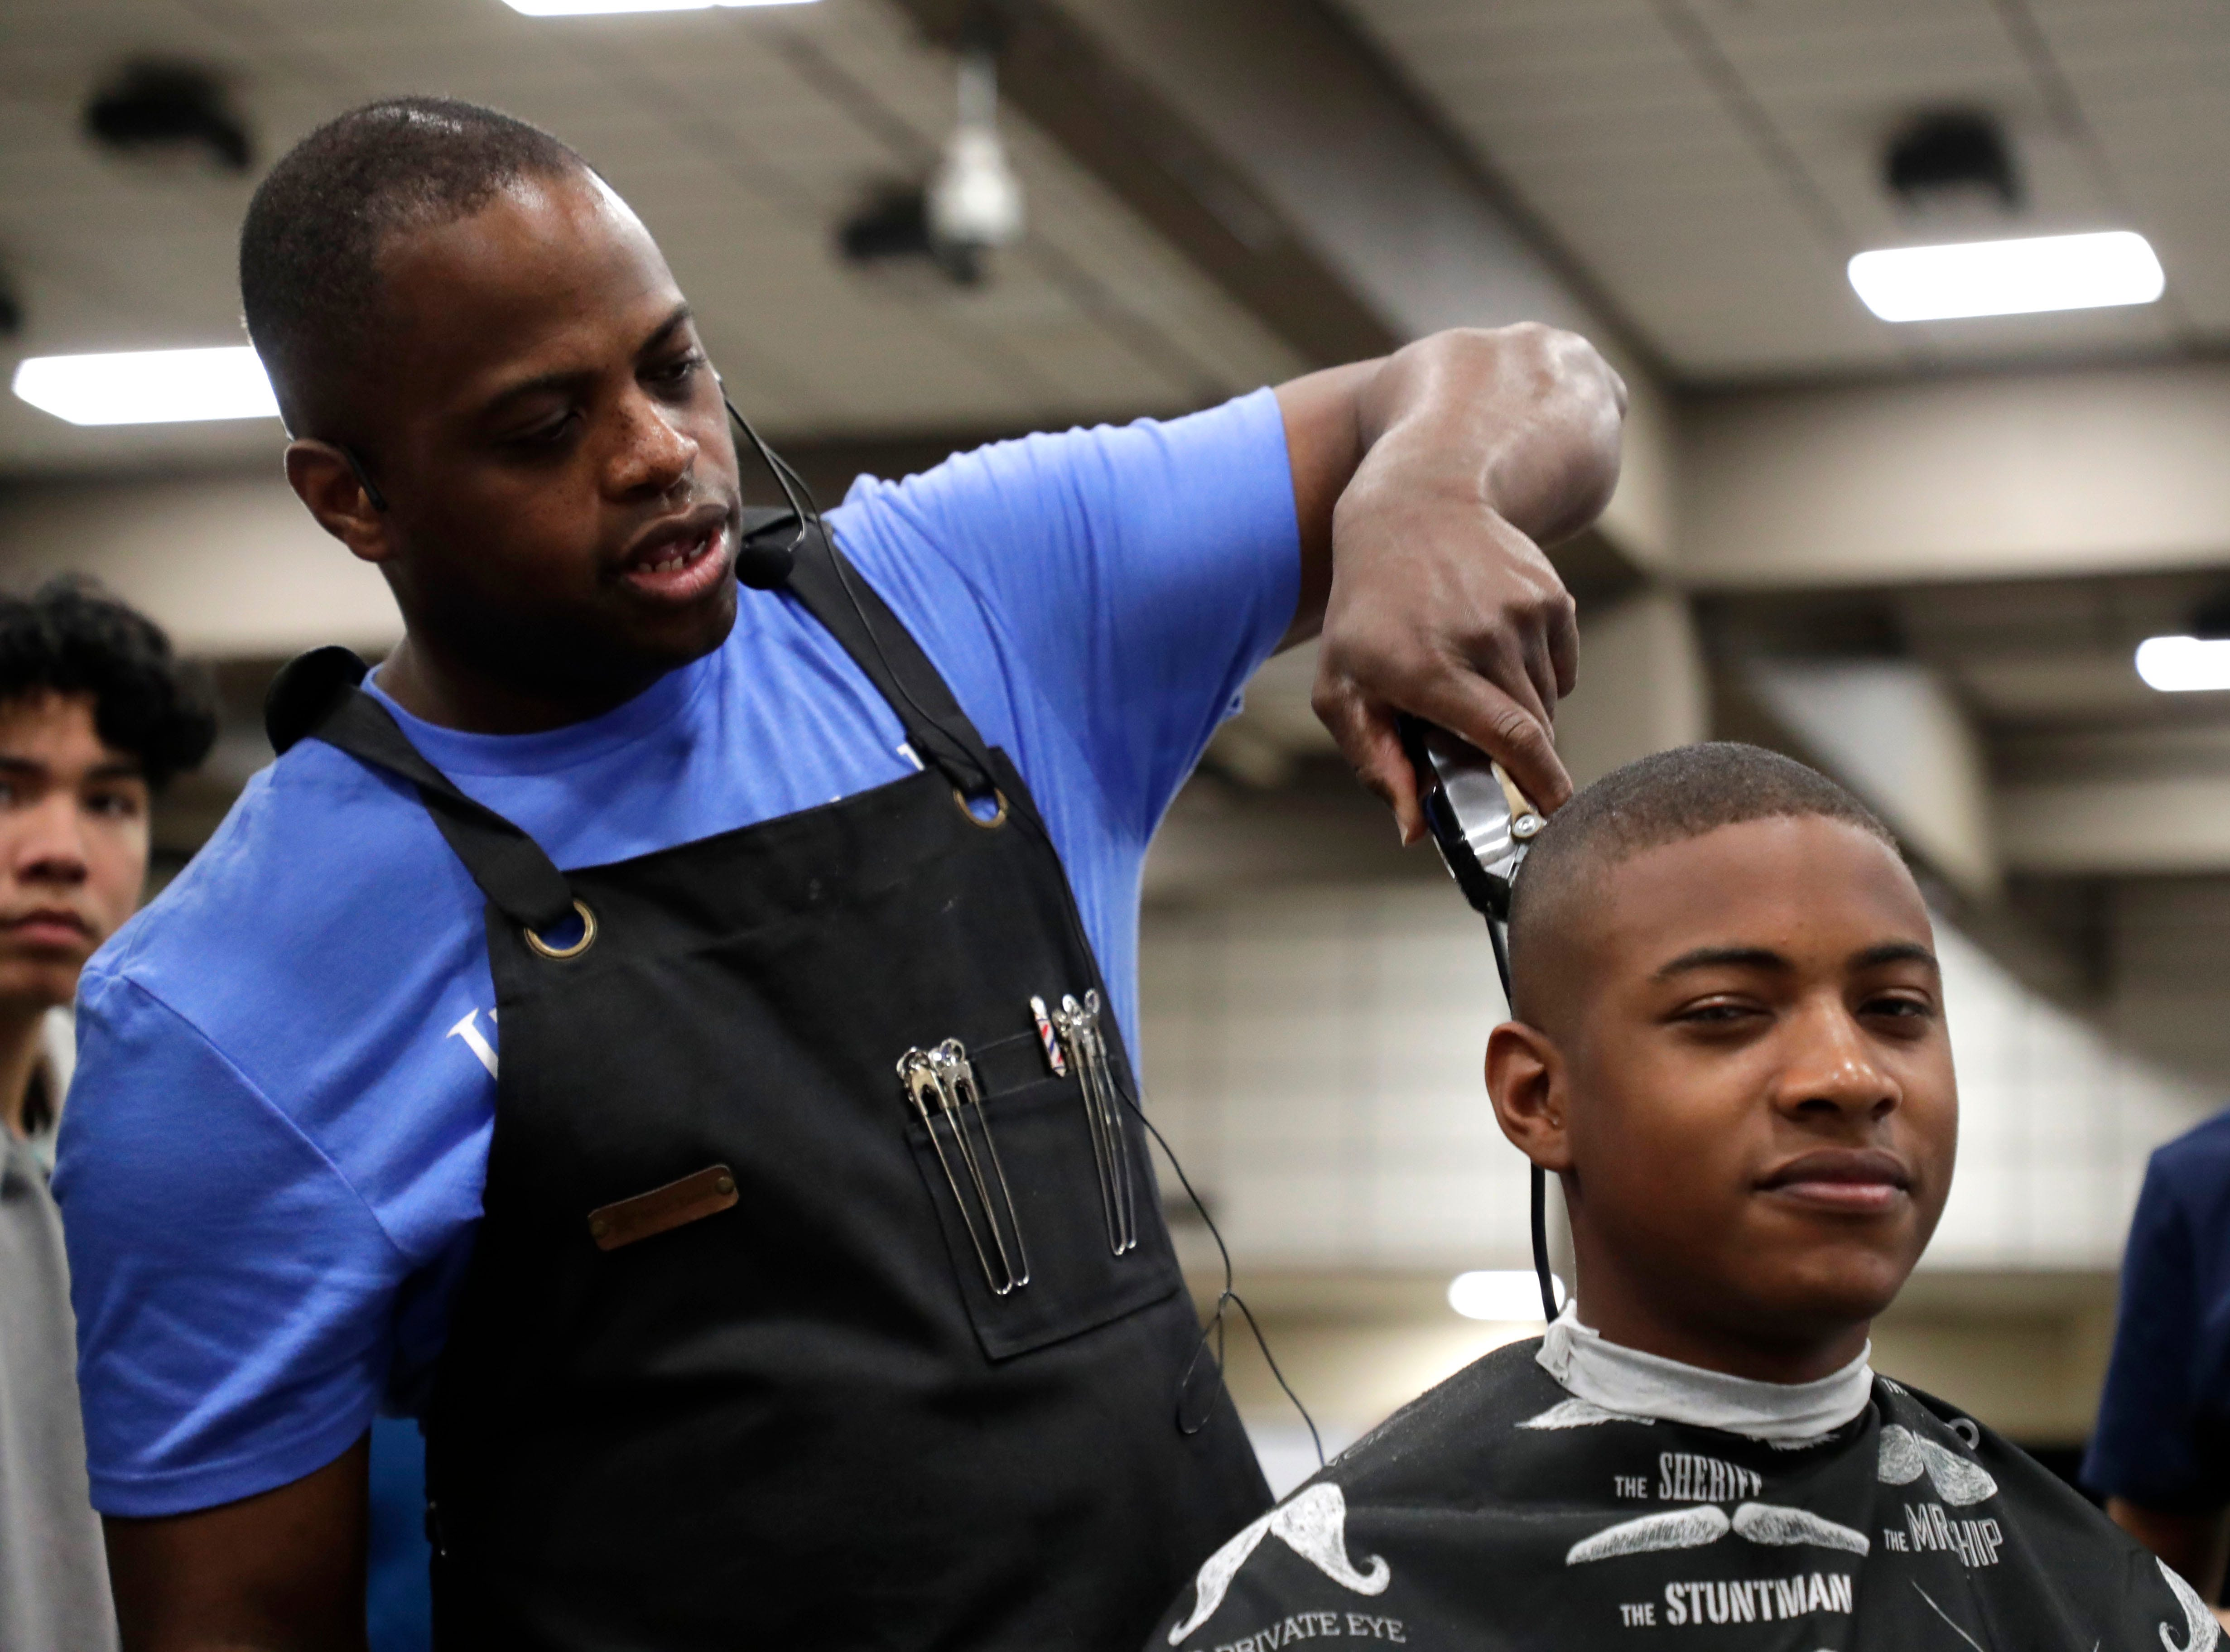 An instructor for the Lively Technical Center barber program, Mahir Rutherford, left, demonstrates a fade technique on his son Mahir Rutherford Jr. High school students throughout Leon County attended the Leon Works Expo at the Tucker Civic Center Friday March 8, 2019.